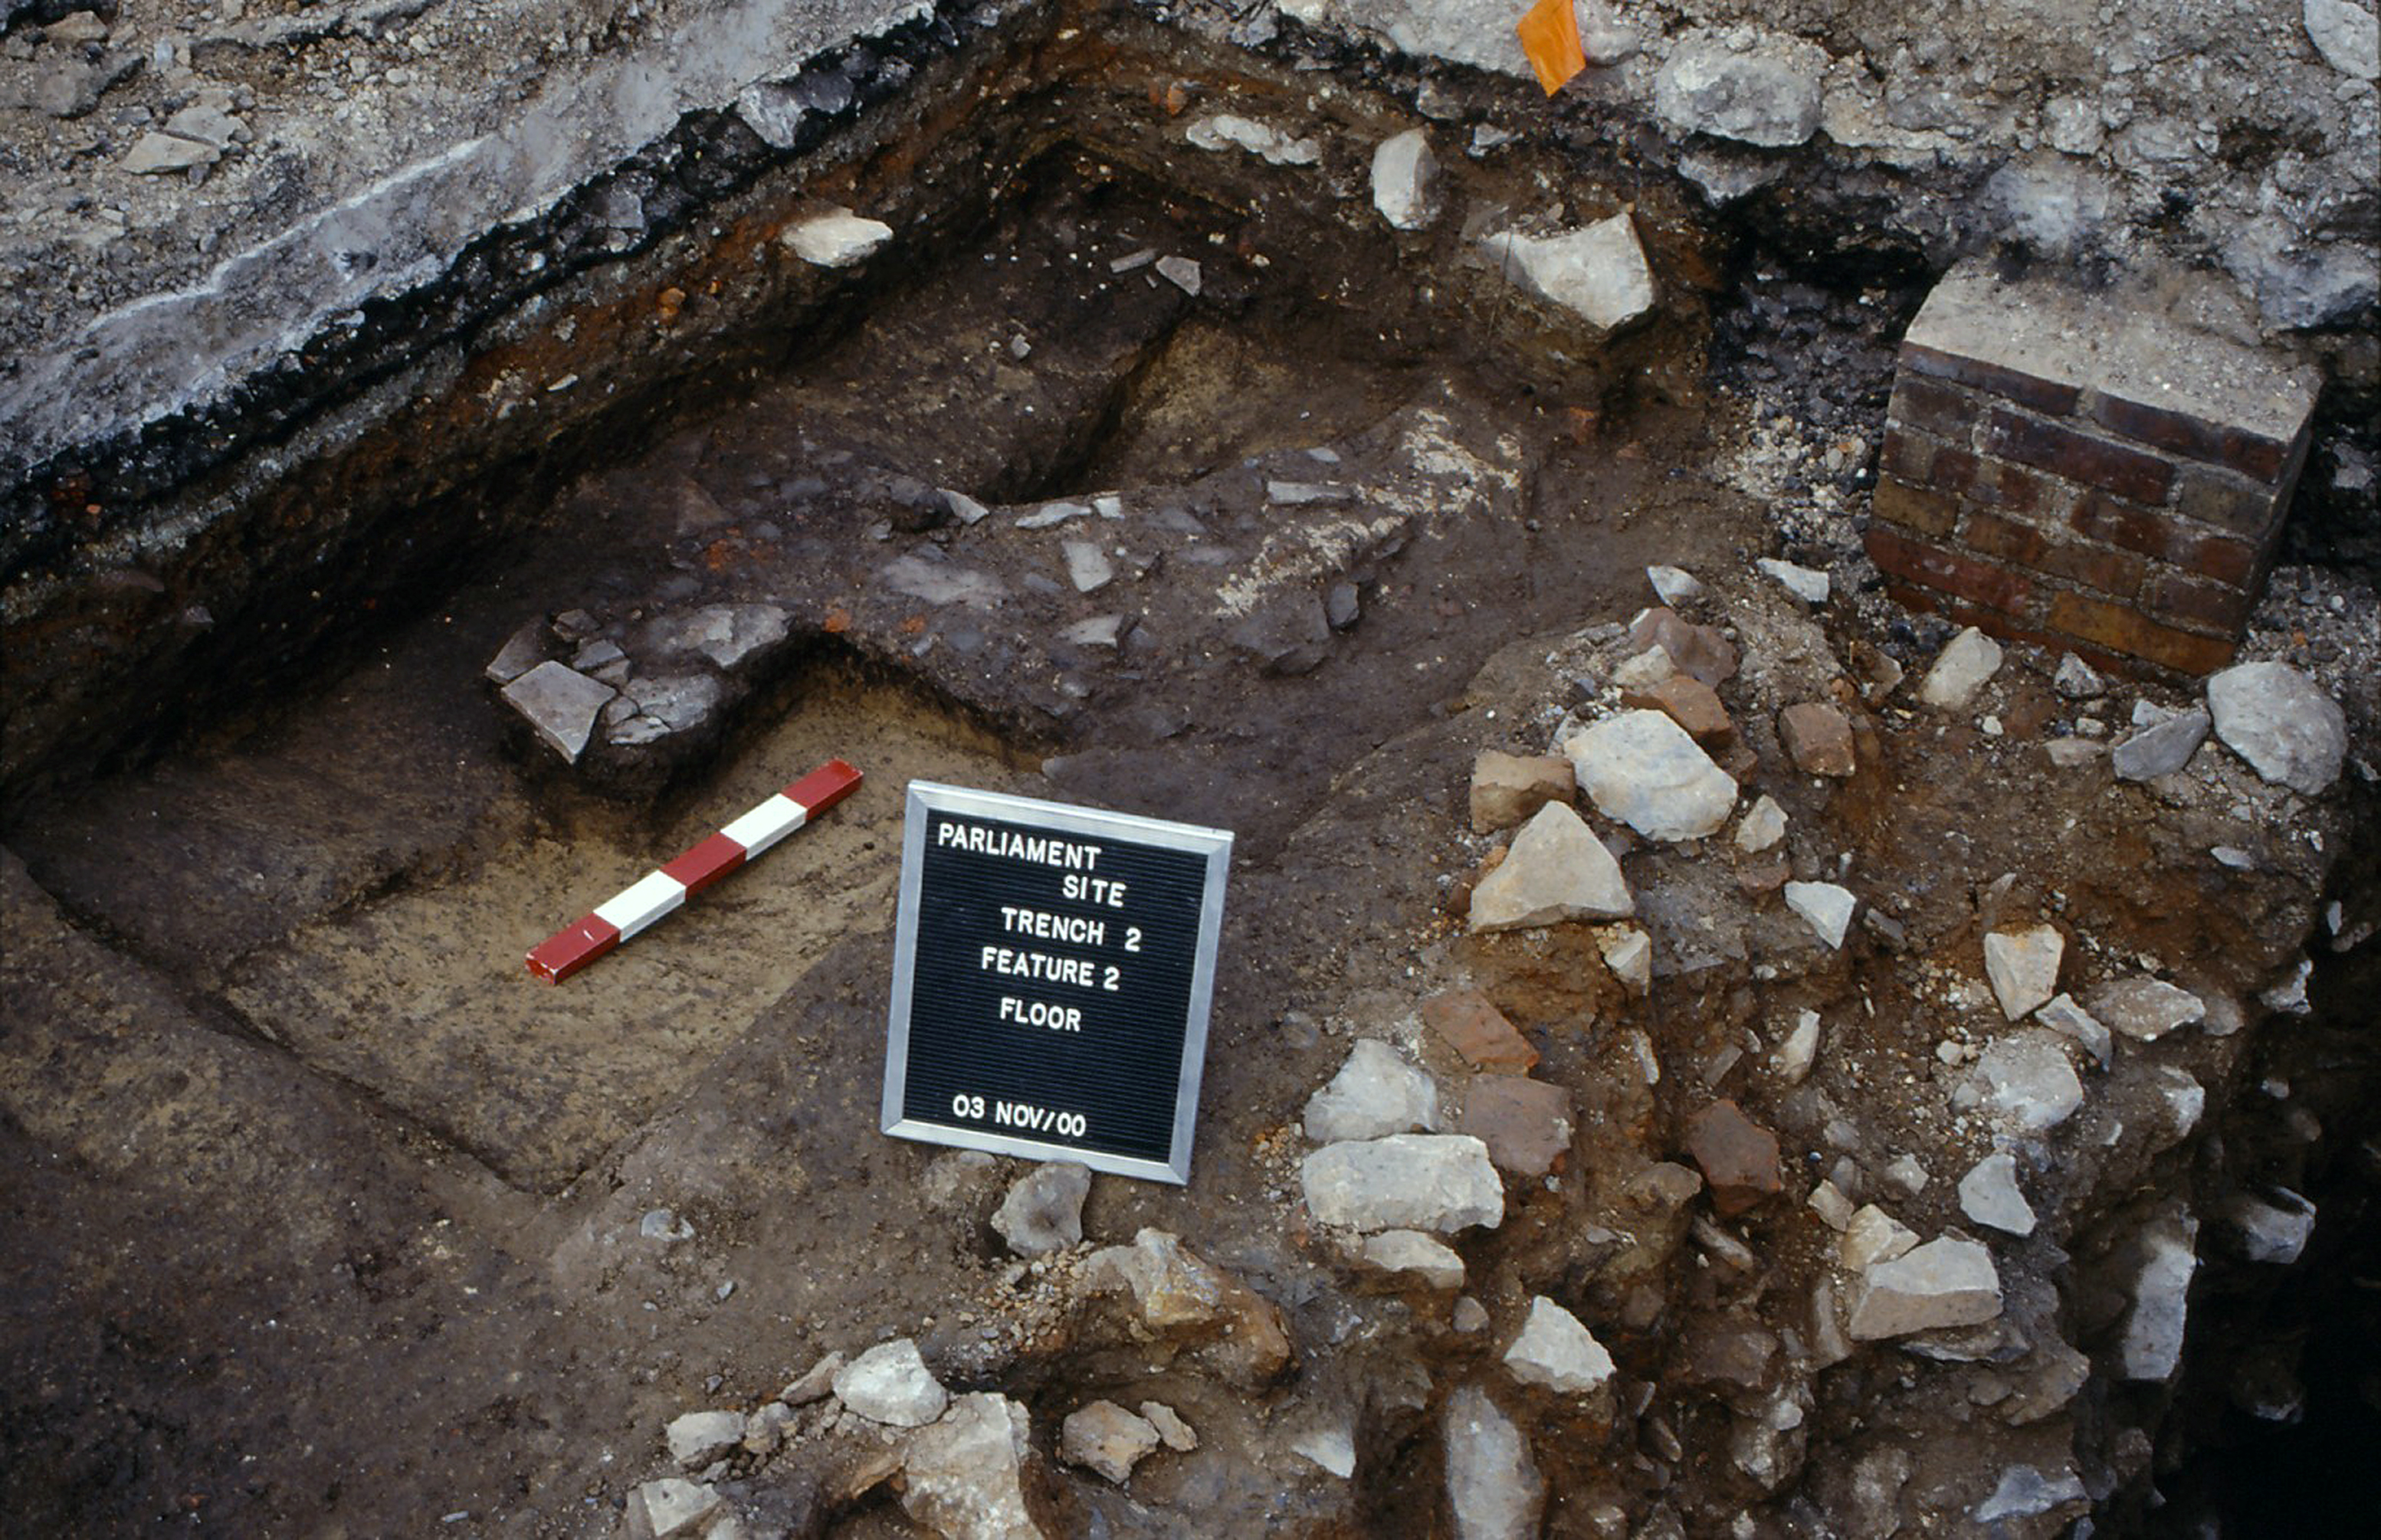 Ontario's first Parliament site, archaeological dig